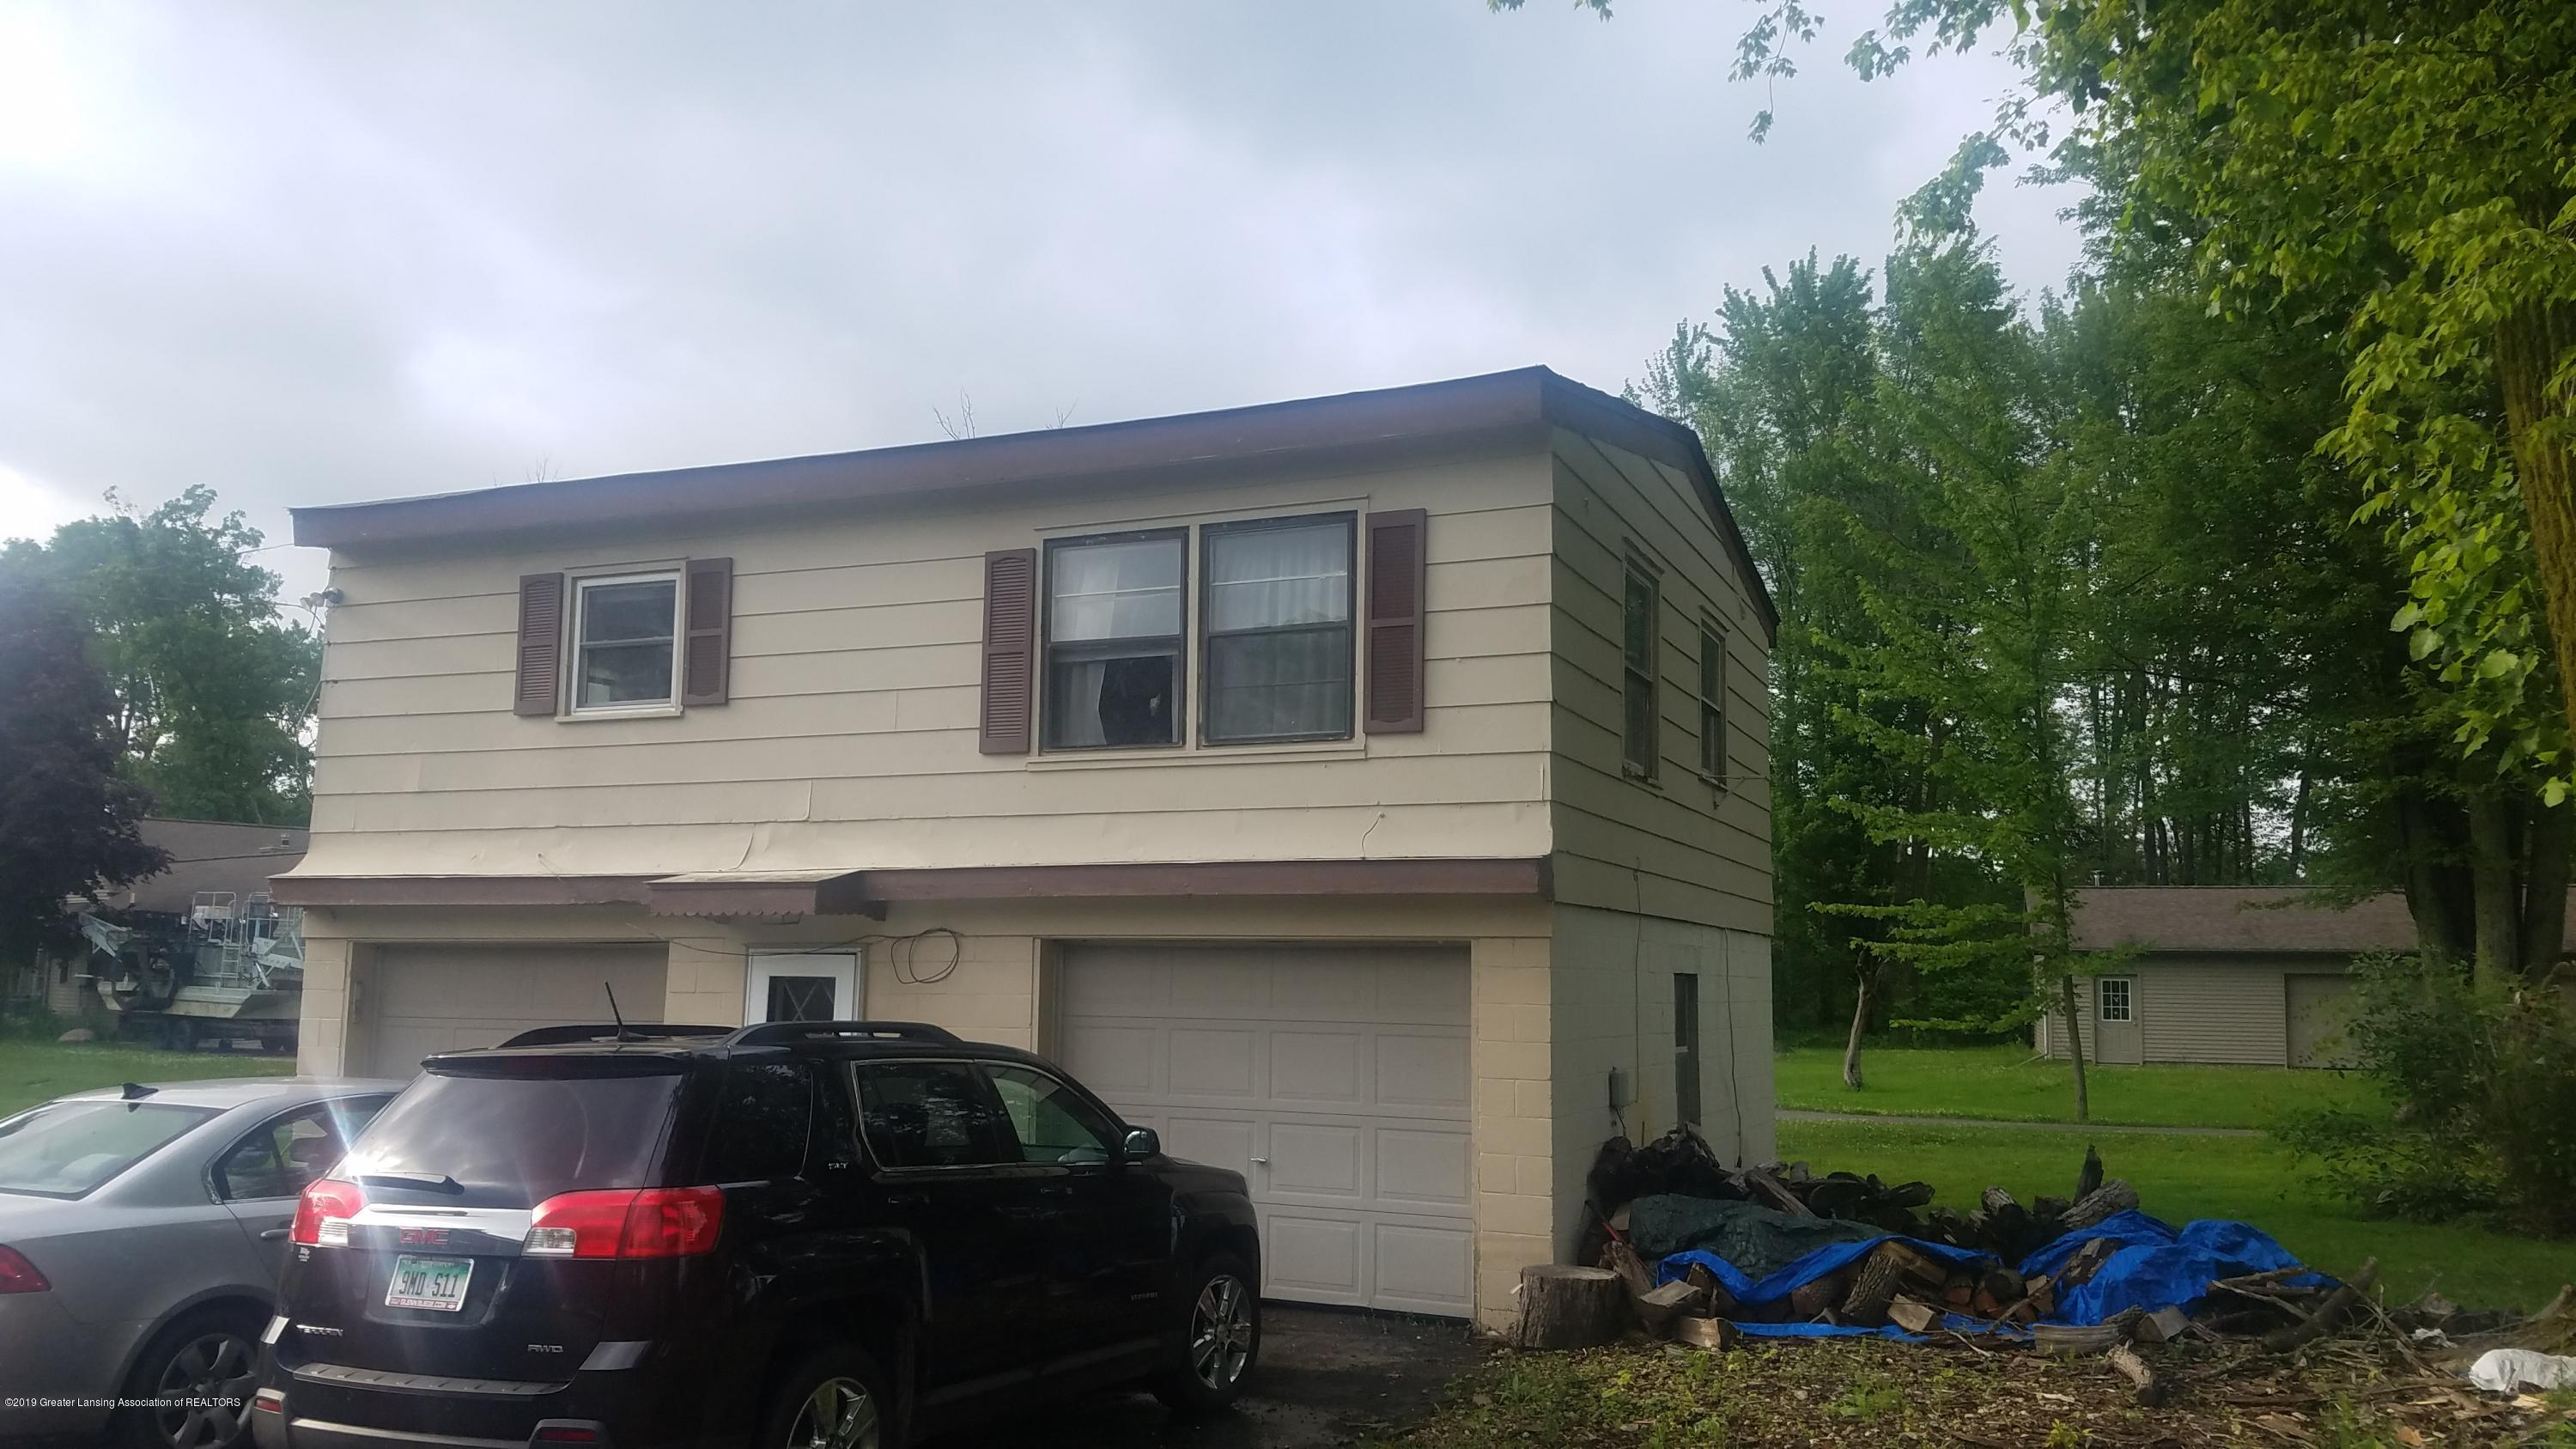 9642 Marshall Rd - DETACHED 2 CAR GARAGE/ UPSTAIRS RENTAL - 11